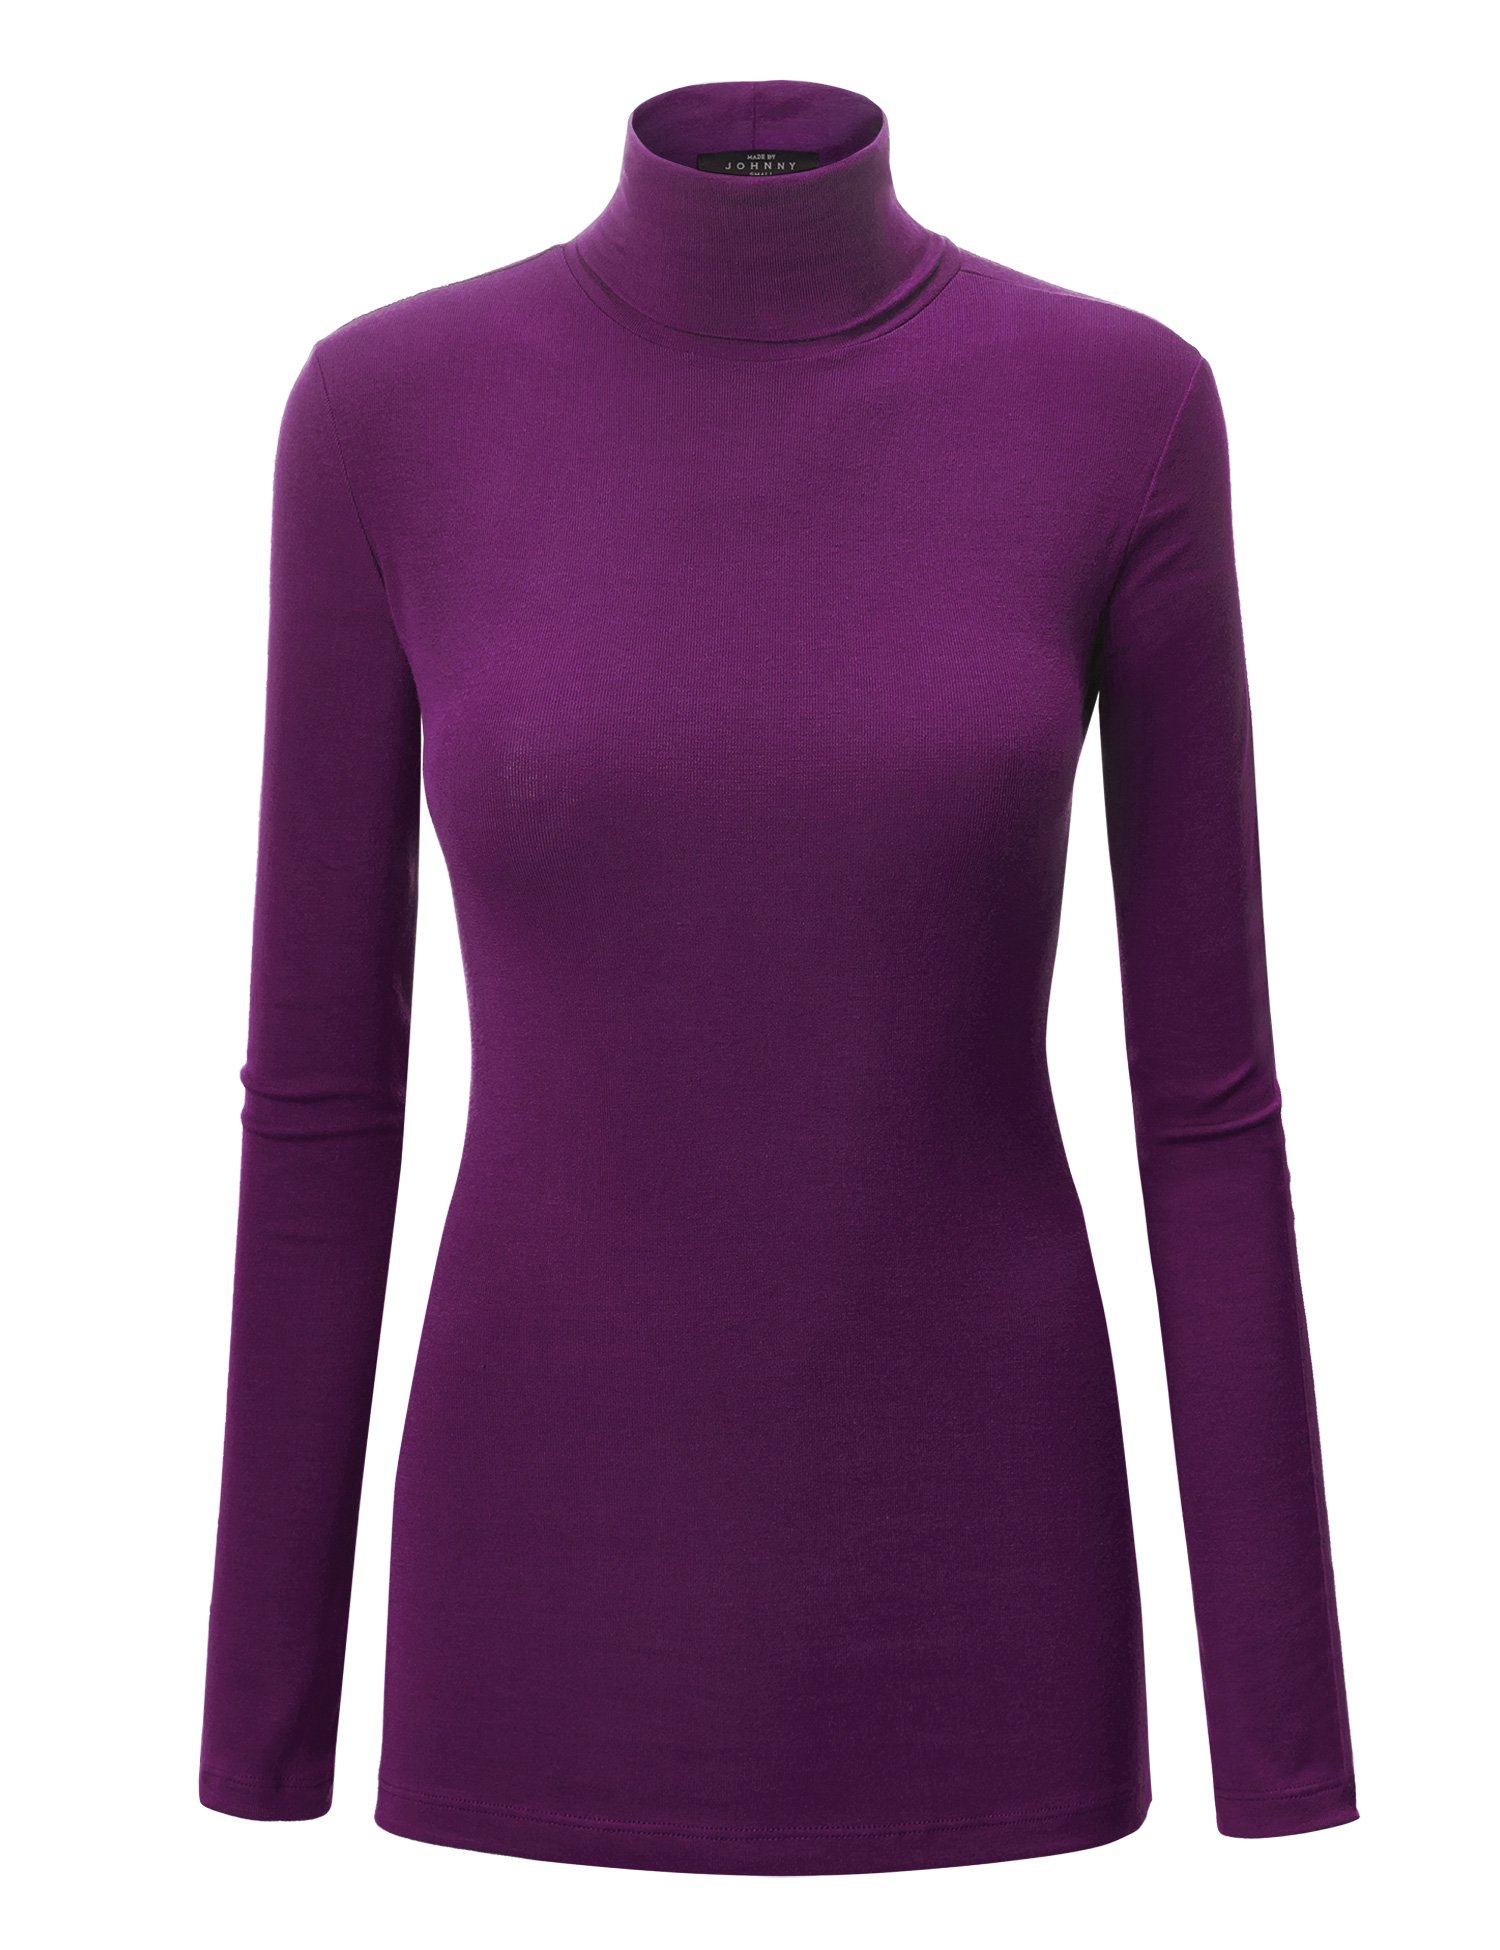 WT950 Womens Long Sleeve Turtleneck Top Pullover Sweater L Purple